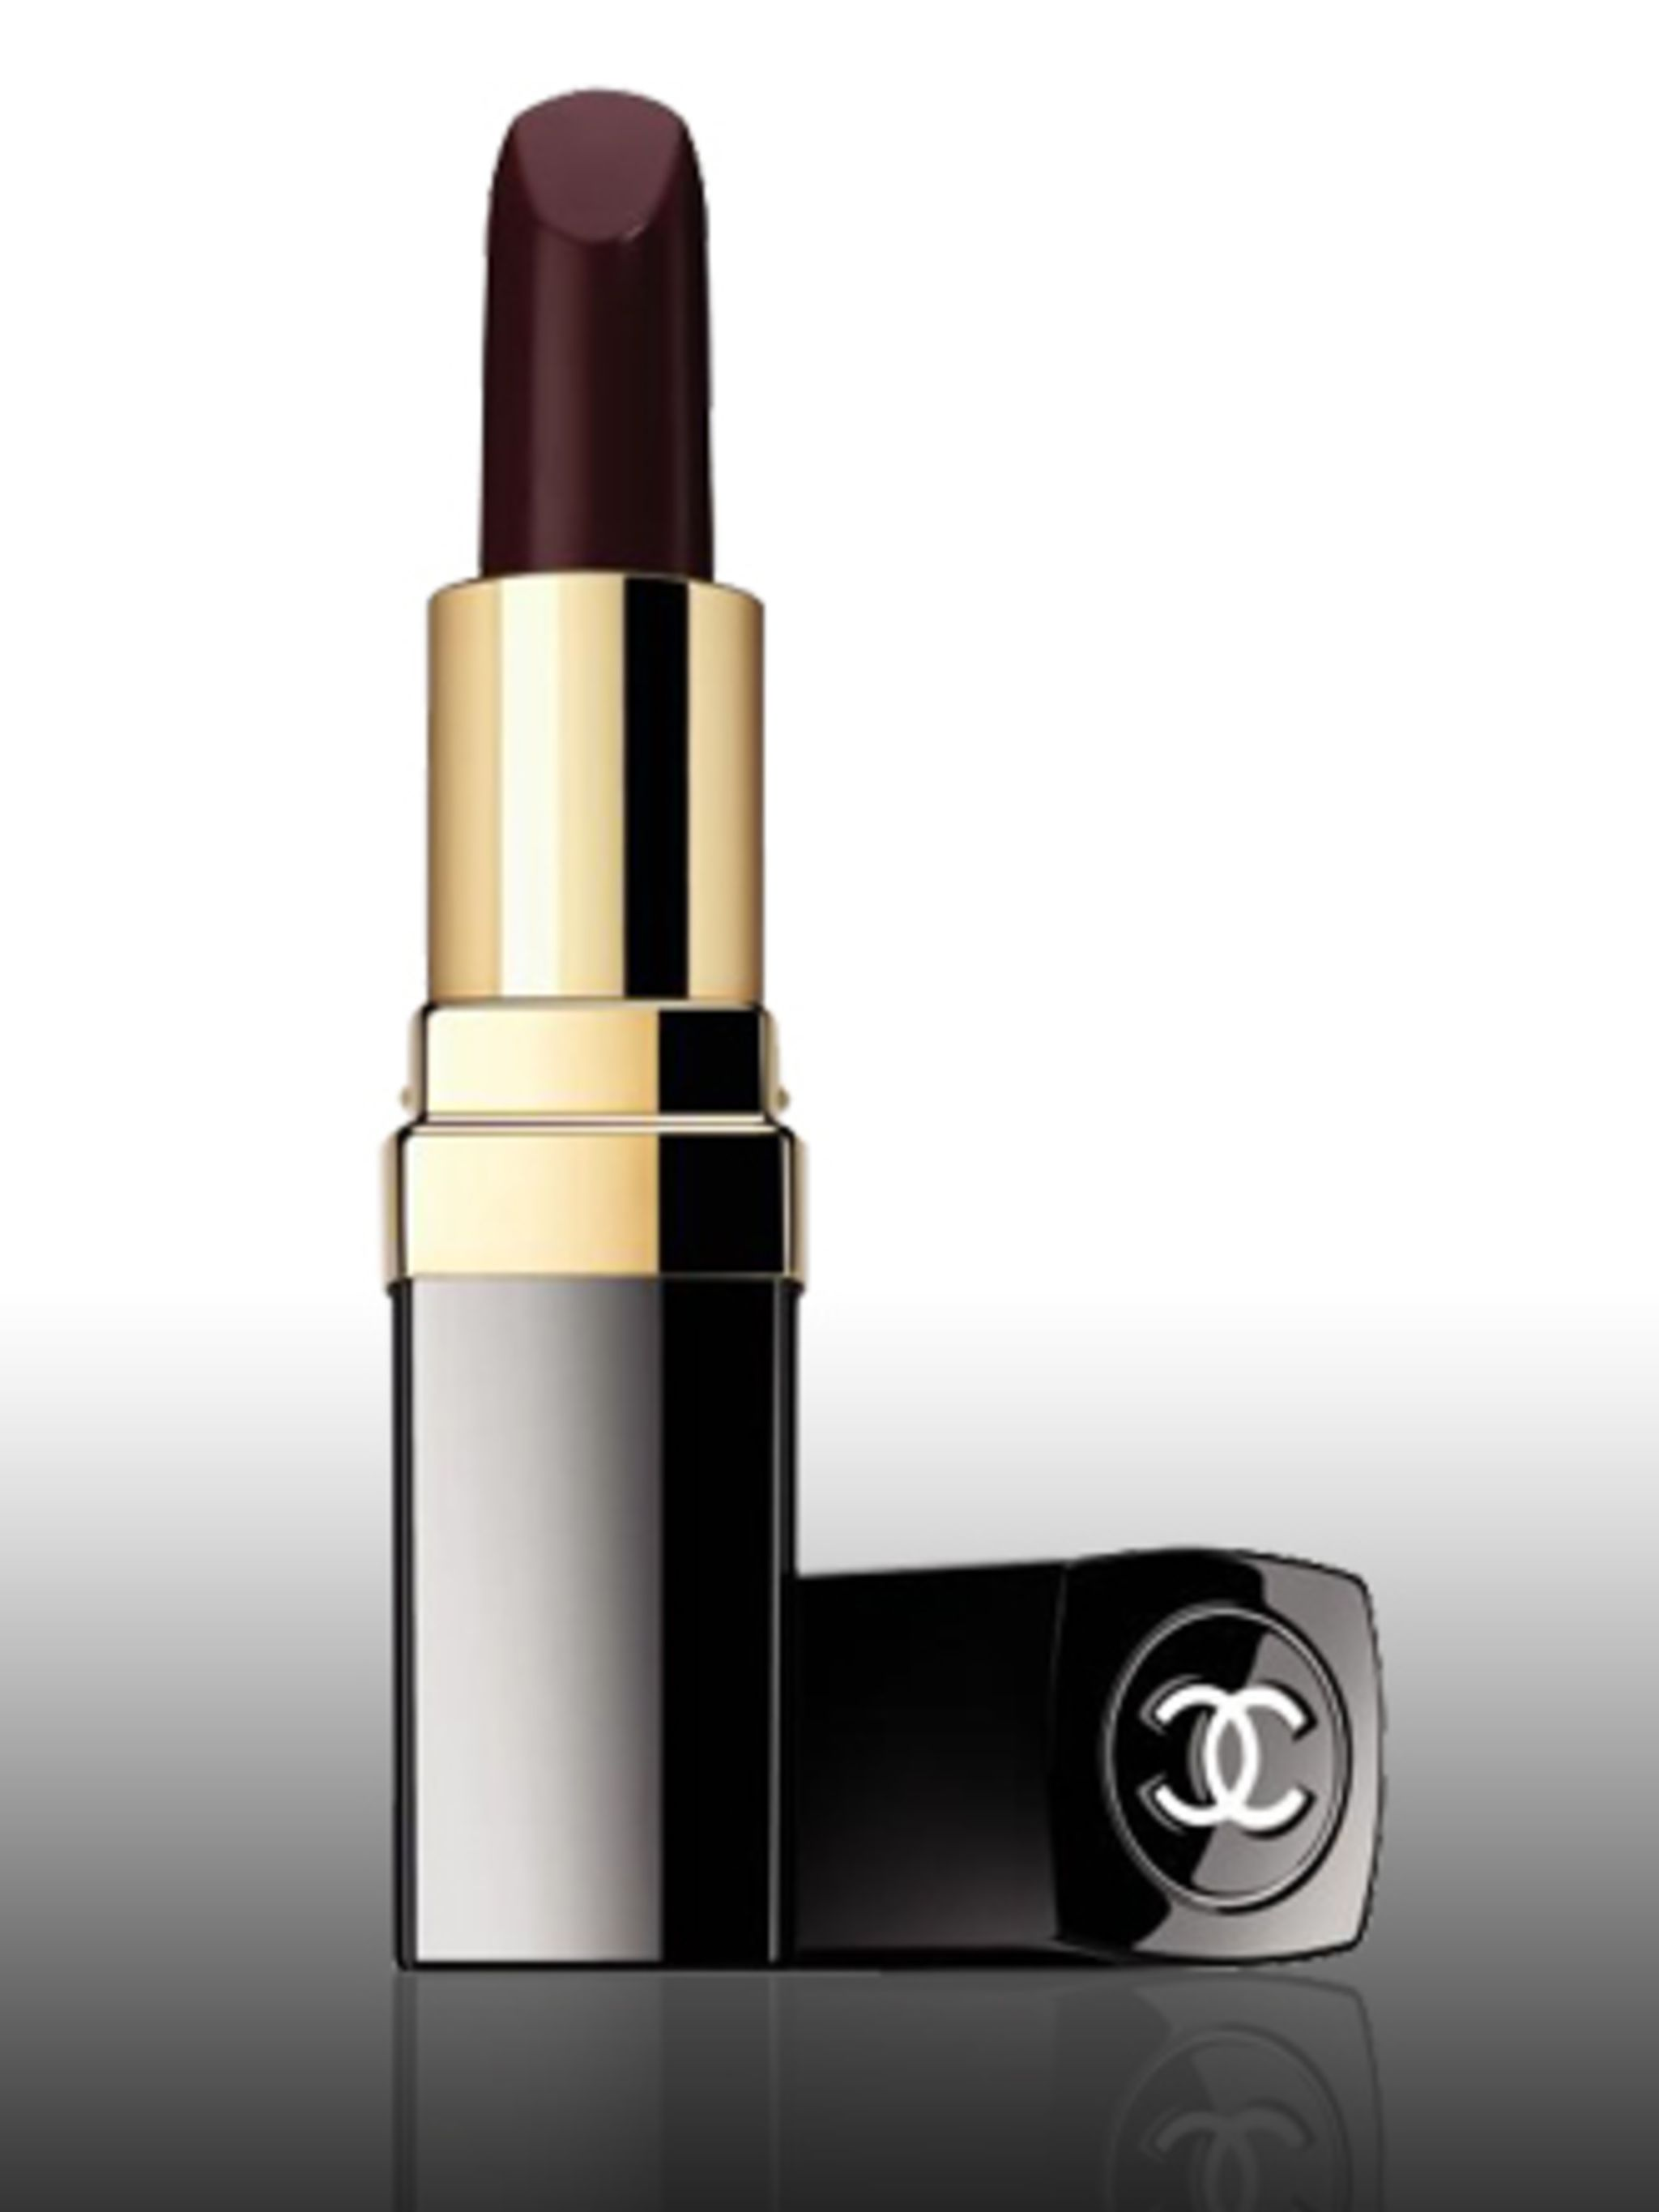 "<p>Rouge Hydrabase in Fantastic Plum, £17.50 by <a href=""http://www.chanel.com/fb/um.php?lo=gb&la=en-gb&re=chanelcom%20"">Chanel</a>. For stockists call 020 7493 3836.</p><p>Dark, vampy, almost blood stained lips will be a signature look for winter"